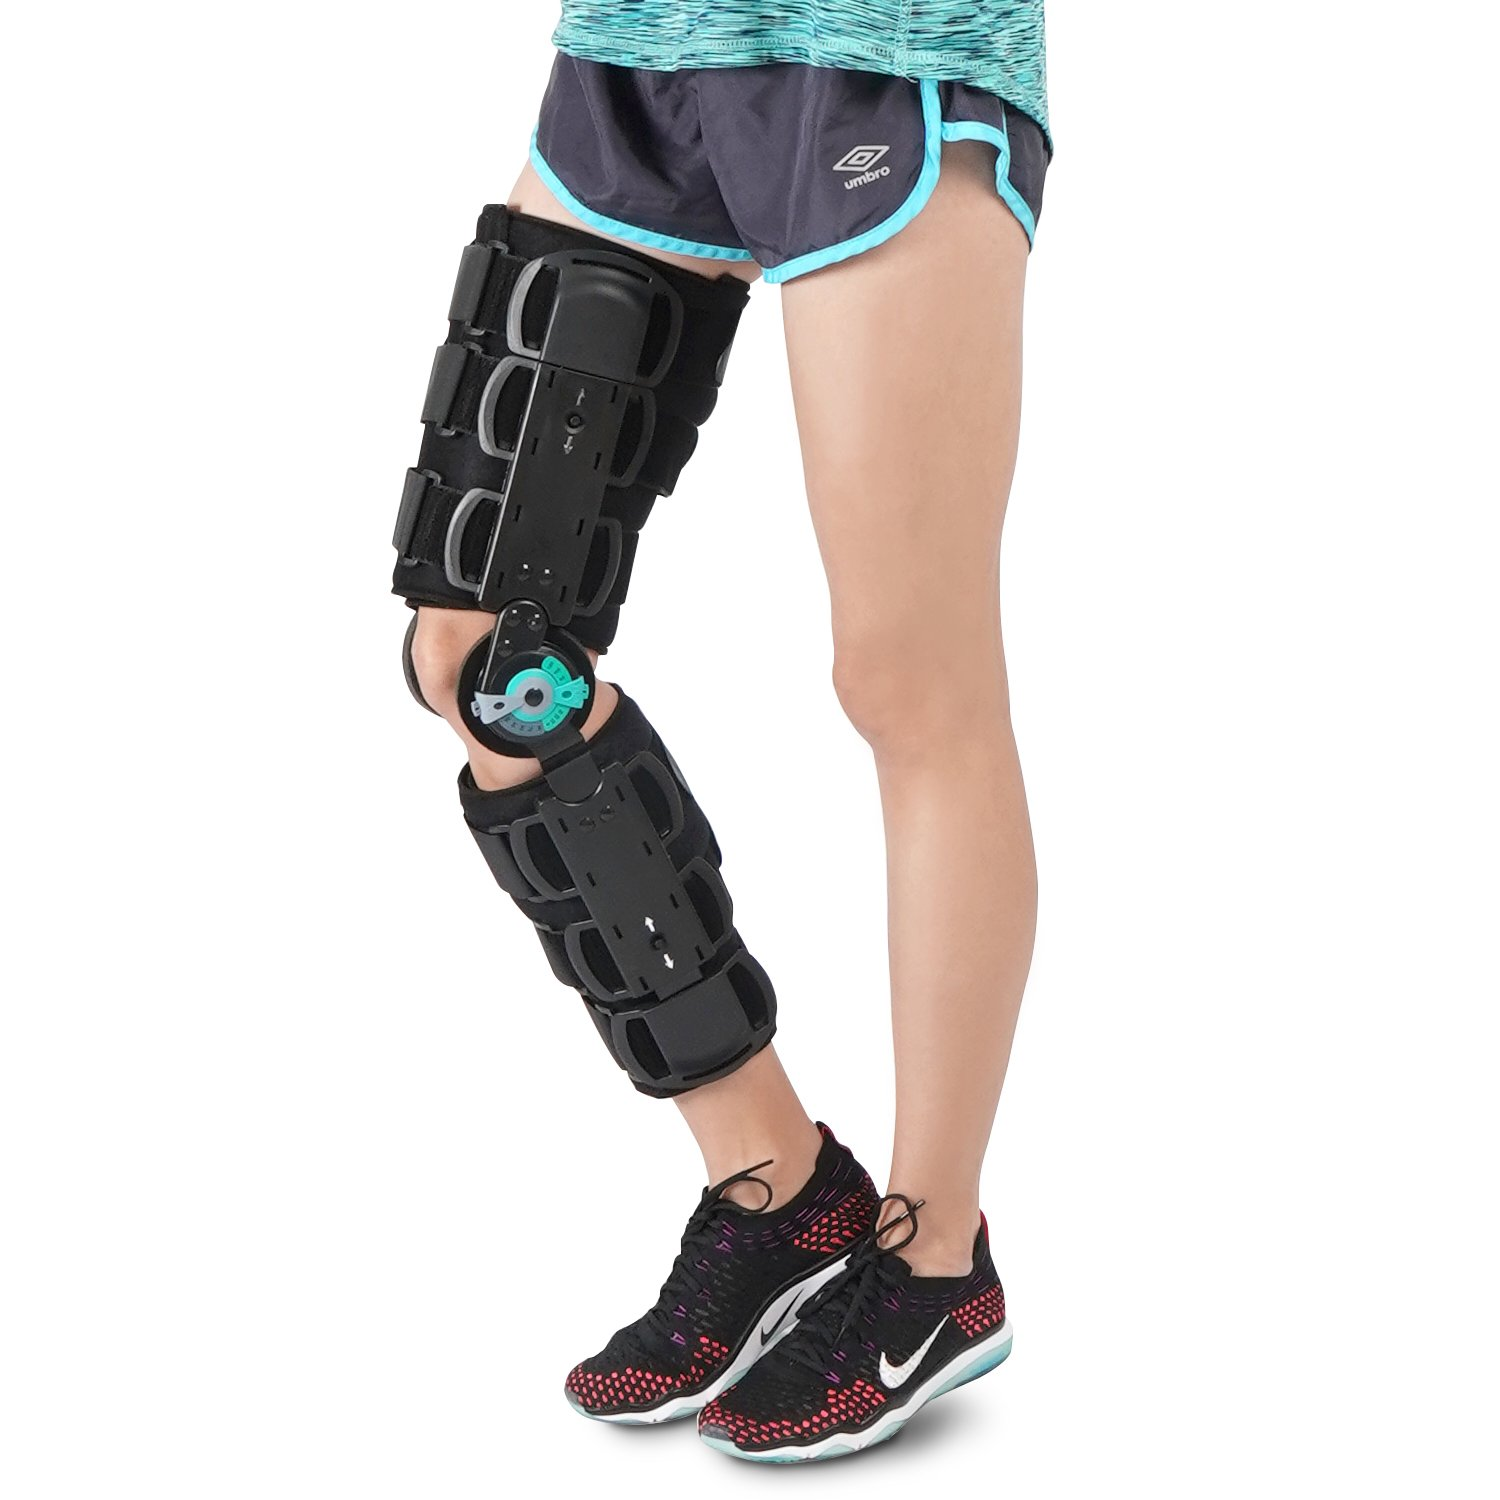 Soles Universal Hinged Knee Brace Telescoping Rom Orthosis Knee Brace, Adjustable Leg Stabilizer – Post Operative Injury Support for ACL, PCL, MCL or LCL - One Size Fits Most - Unisex by Soles